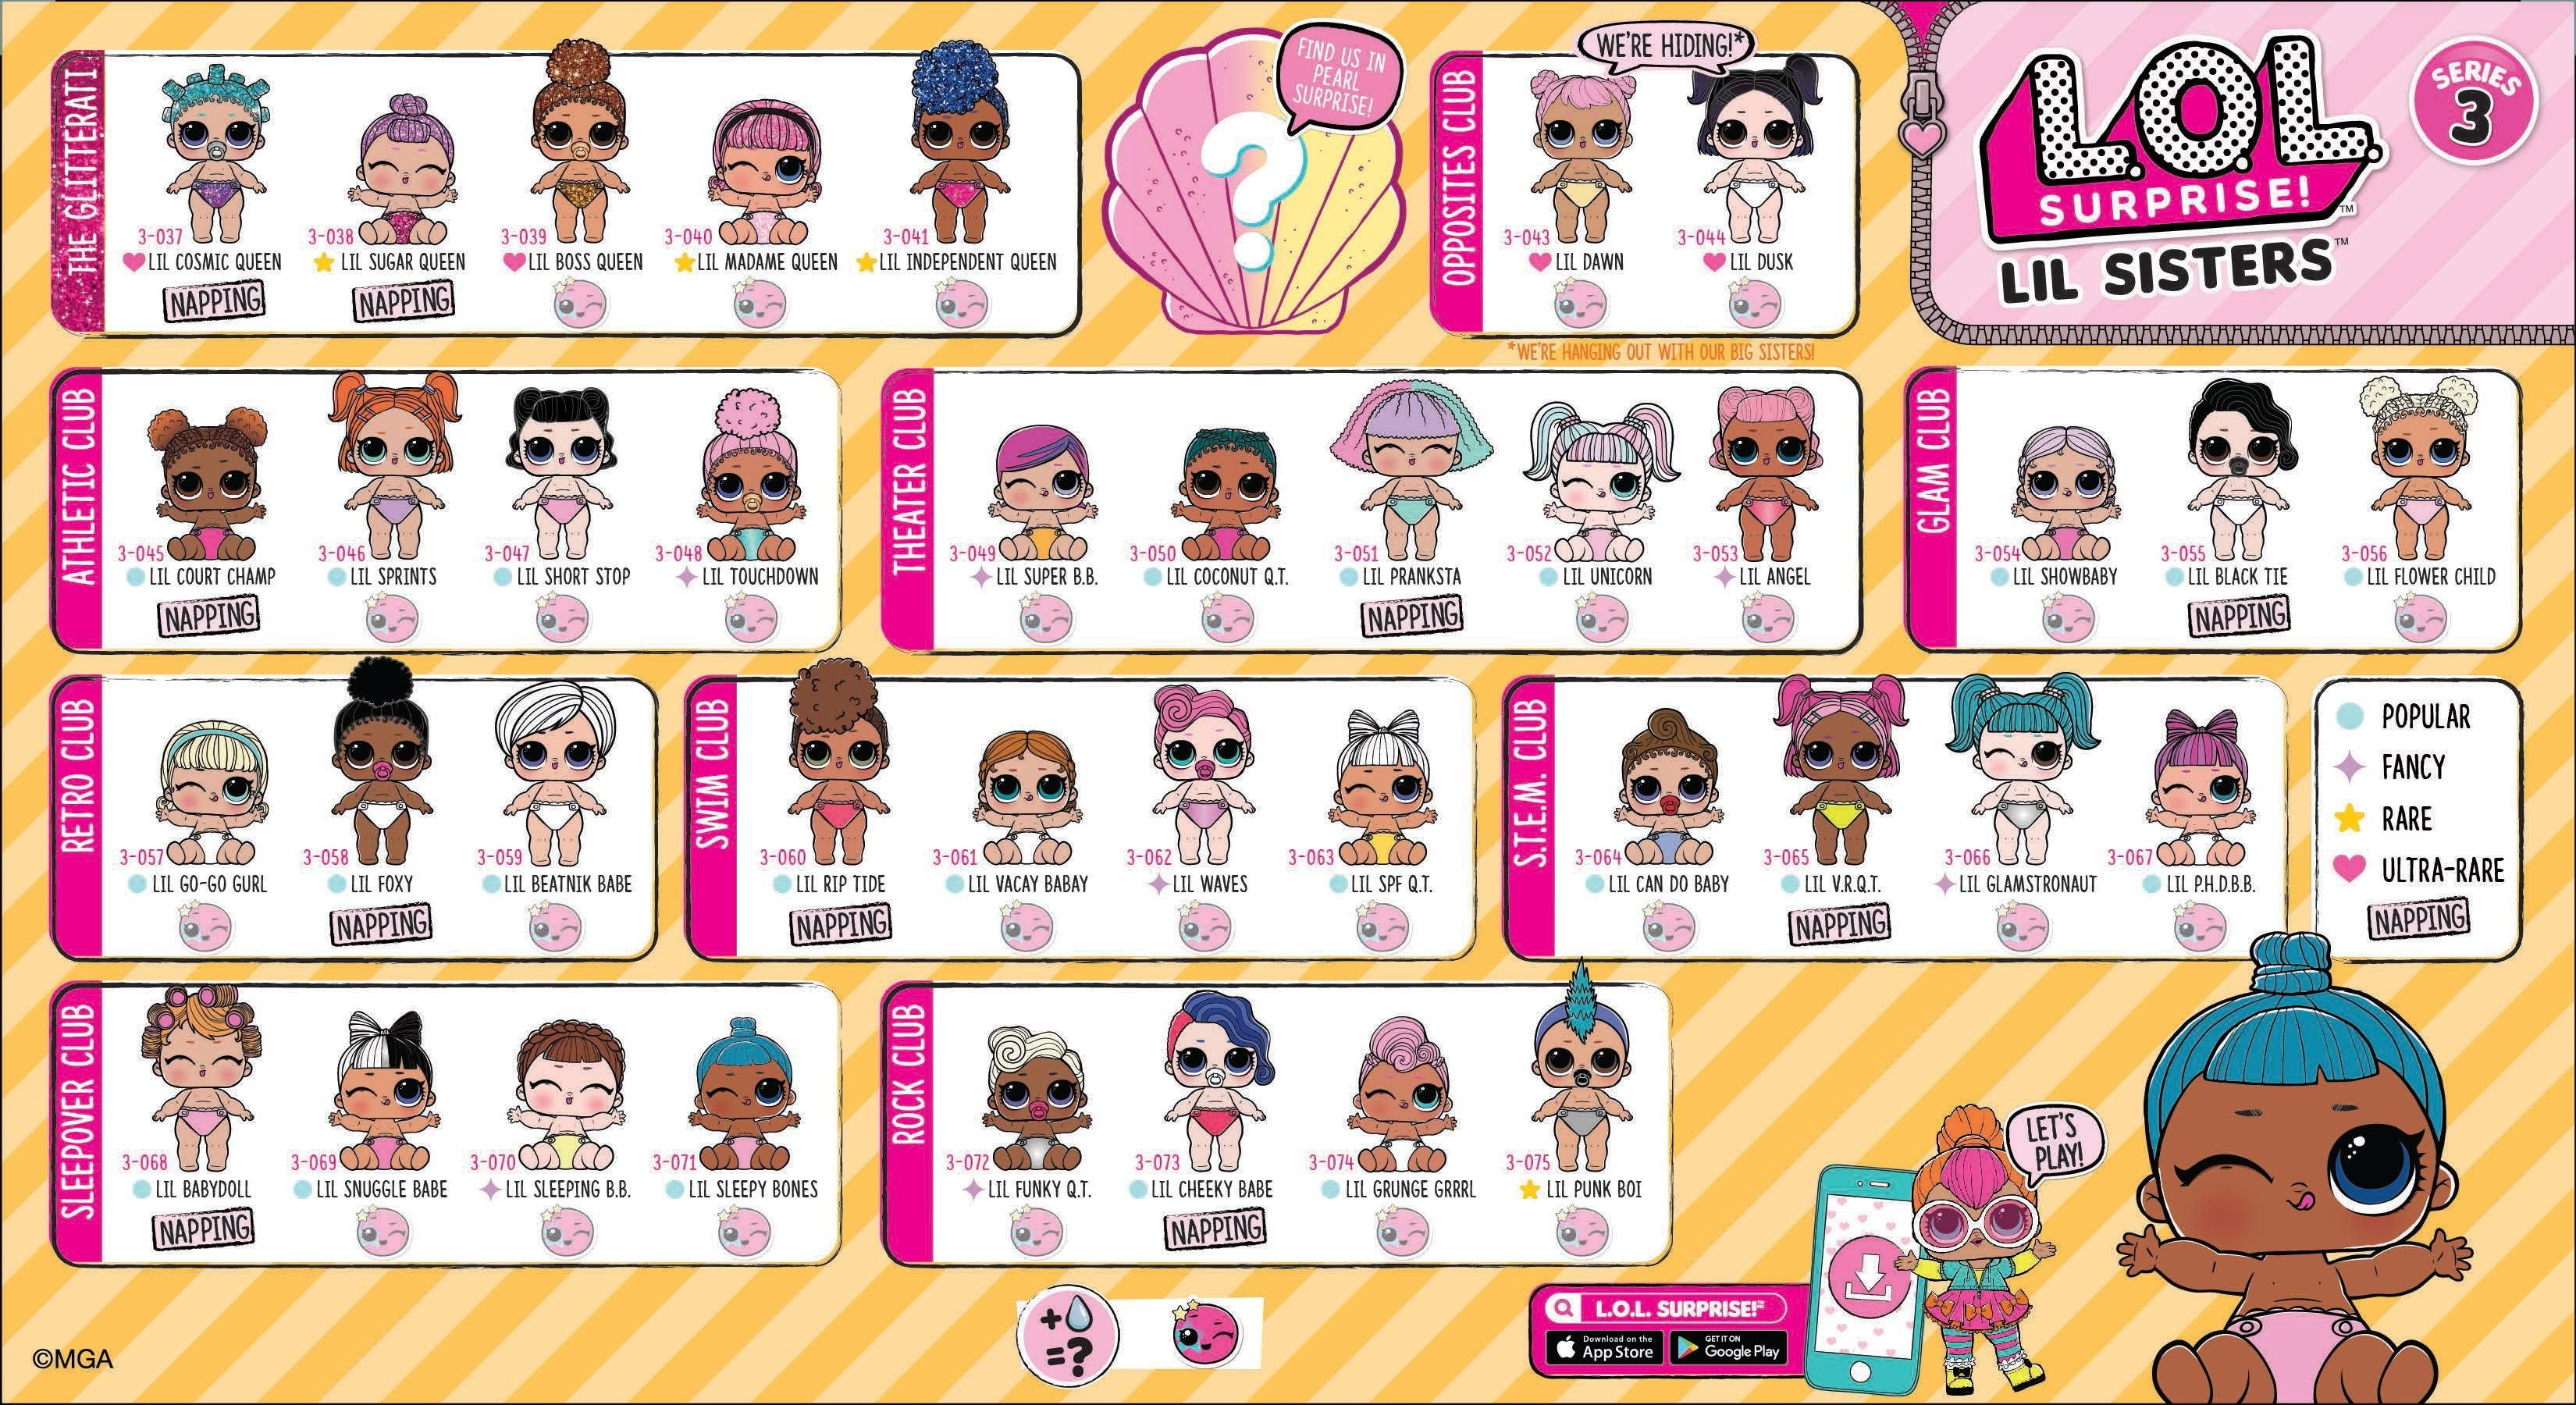 Lol Surprise Lil Sisters Series 3 Checklist List Collector Guide Lil Sister Lol Dolls Lol